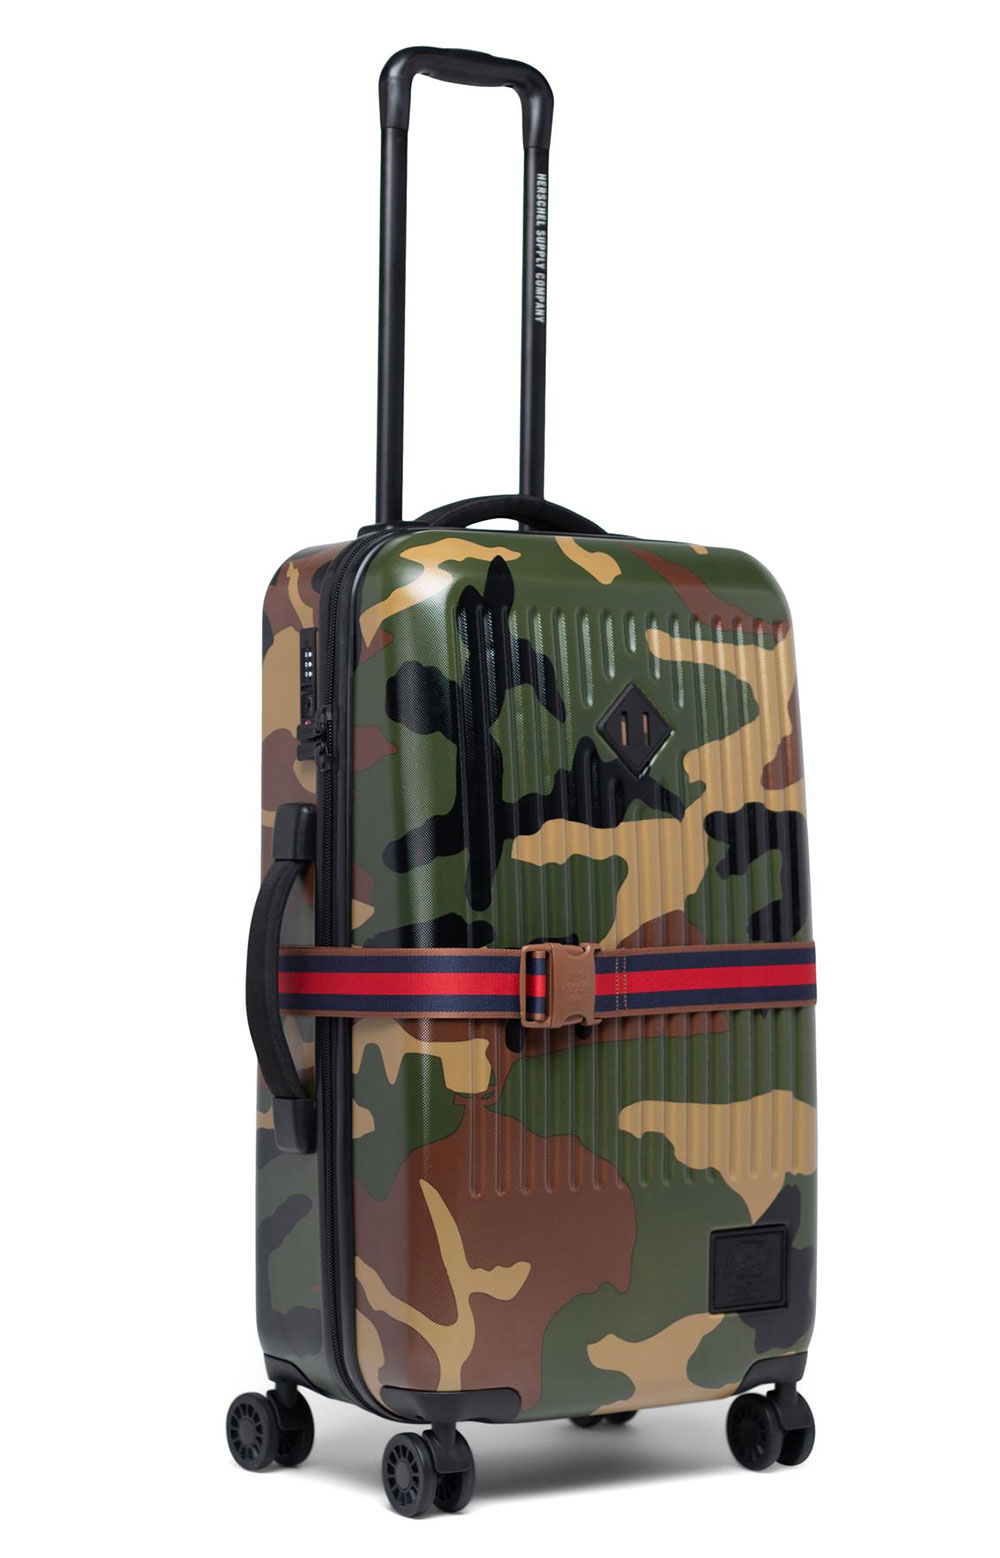 Luggage Belt - SDLBR 2